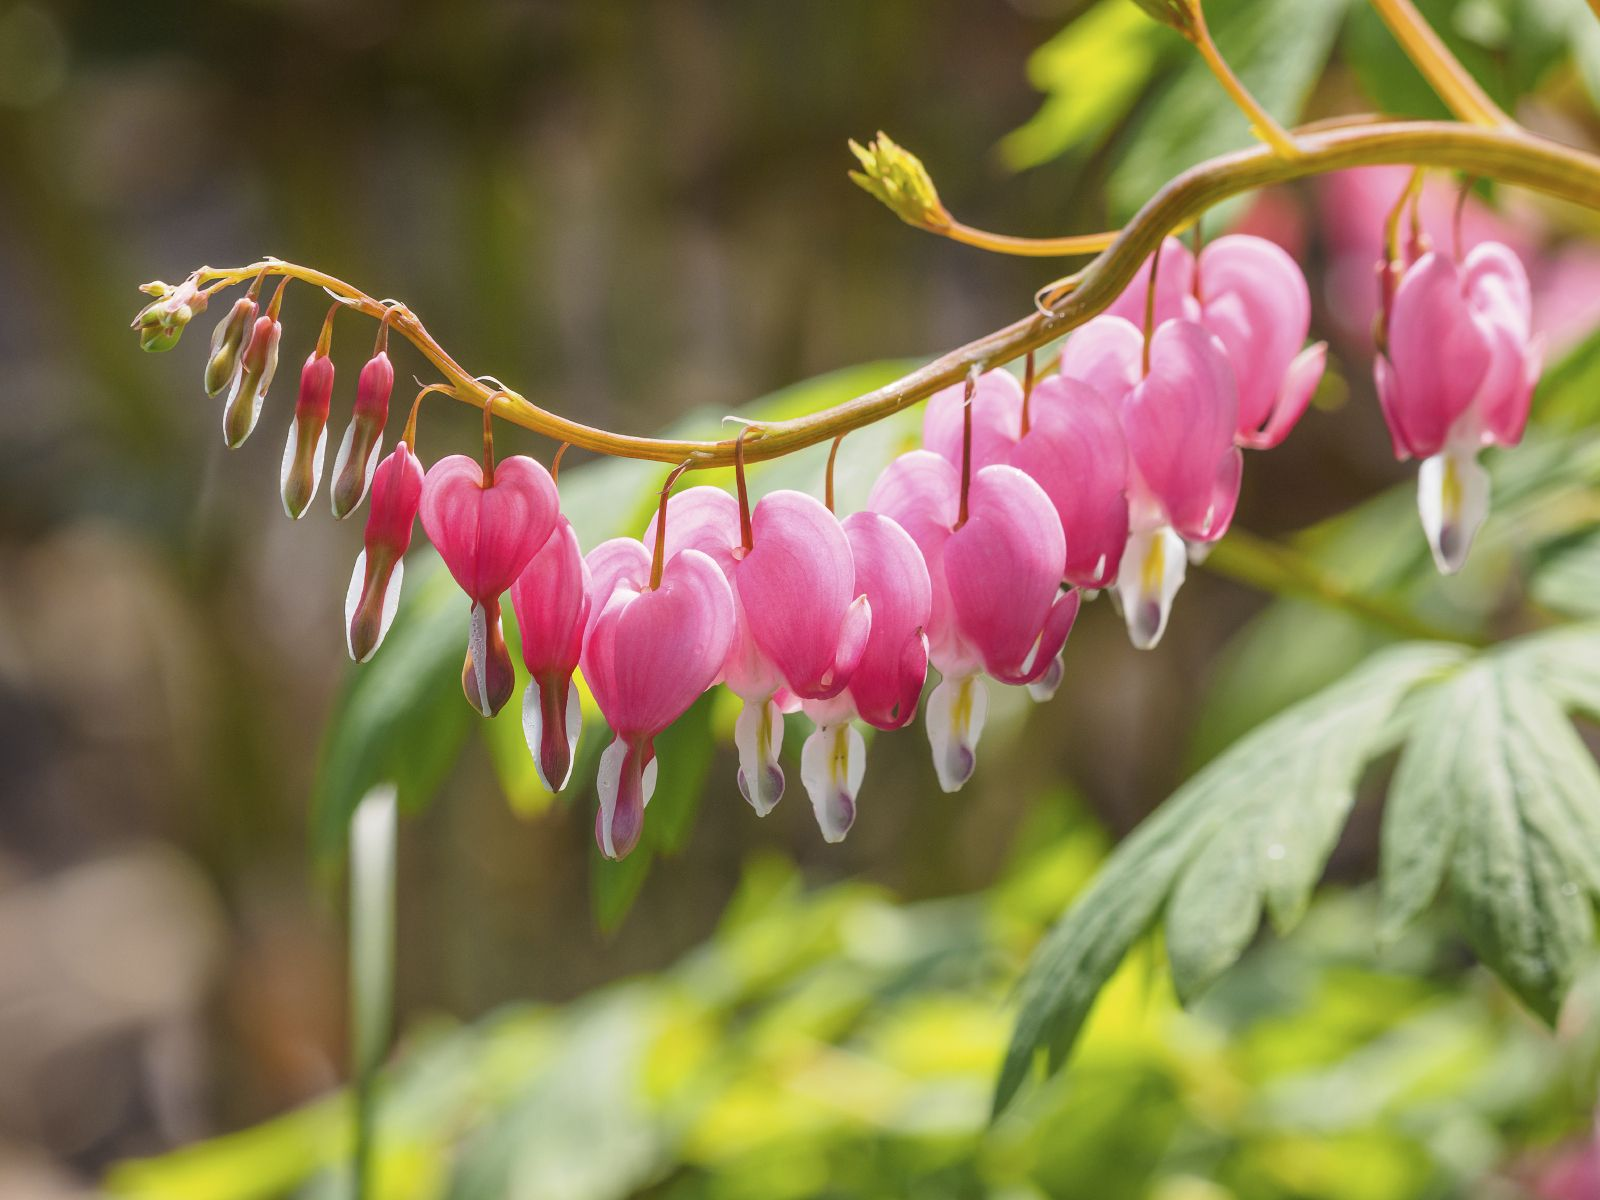 Bleeding Heart Blooms Appear In Early Spring Does Well In Shade Plant Goes Dormant In Summer May Bleeding Heart Flower Bleeding Heart Plant Bleeding Heart